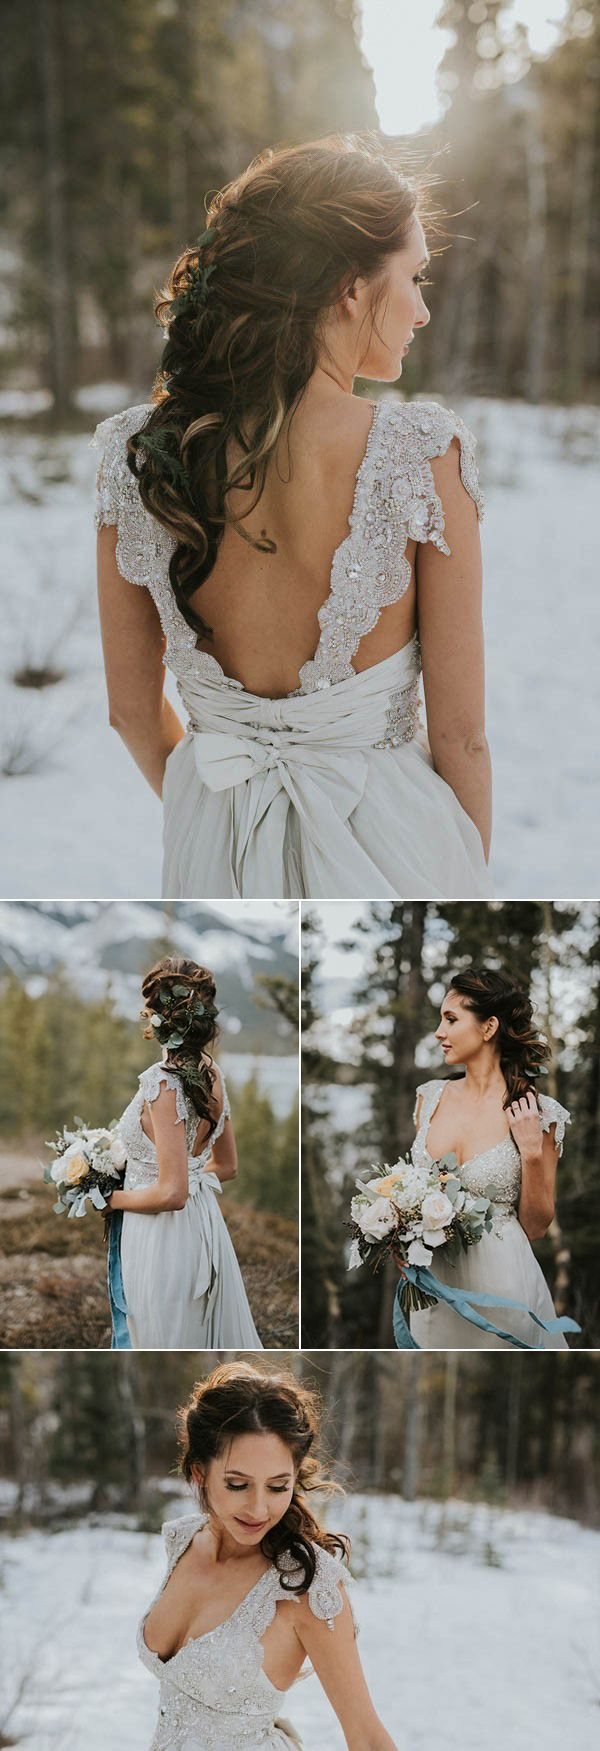 Voluminous messy bridal braid | Image by Darren Roberts Photography